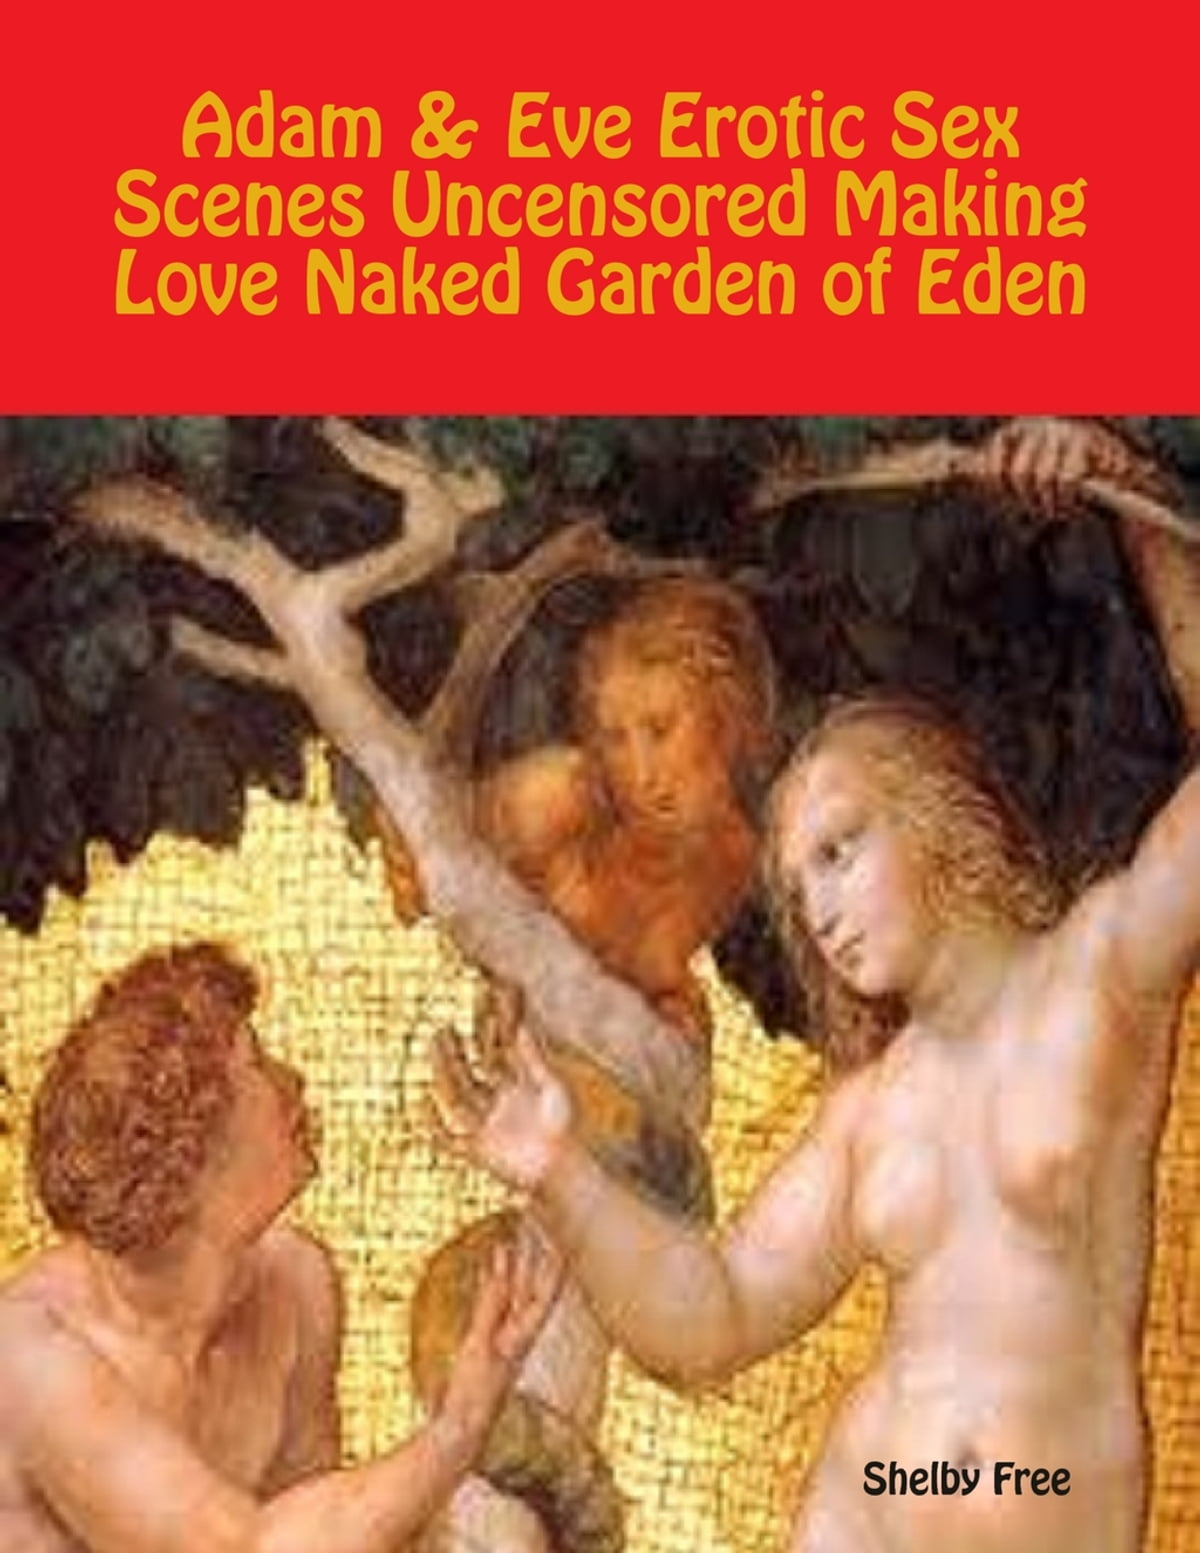 Adam & Eve Erotic Sex Scenes Uncensored: Making Love Naked Garden of Eden  eBook by Shelby Free | Rakuten Kobo